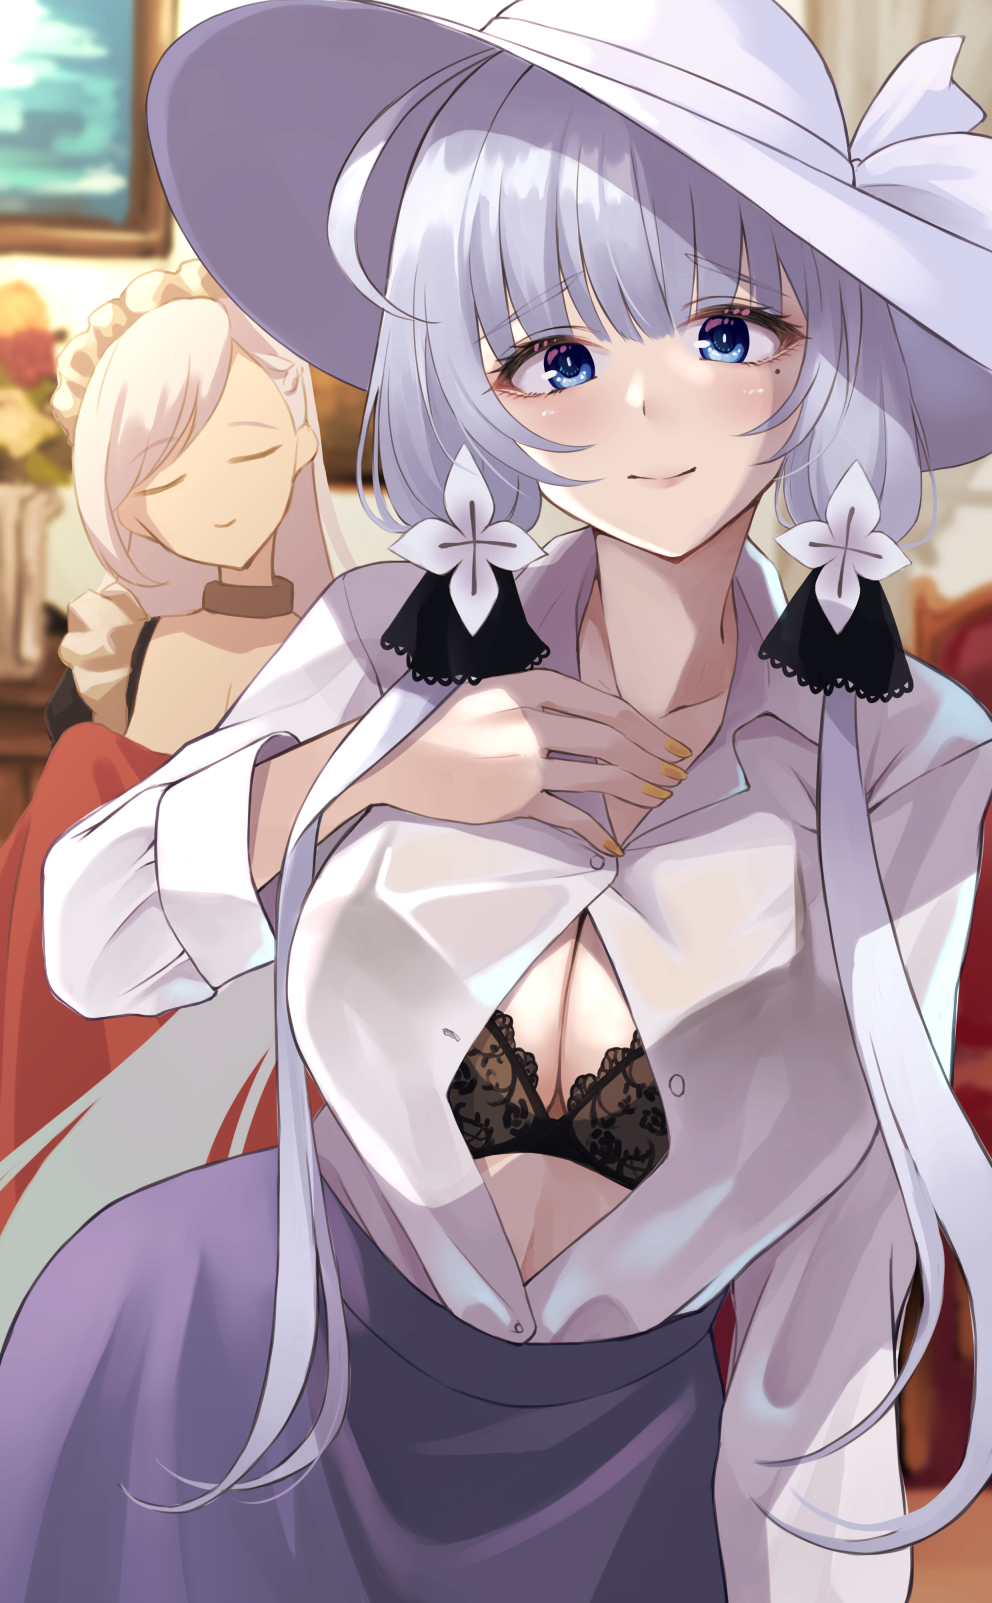 2girls alternate_costume azur_lane bangs belfast_(azur_lane) black_bra blue_eyes blue_skirt blurry blush bra breasts closed_eyes closed_mouth collarbone collared_shirt depth_of_field eyebrows_visible_through_hair hand_on_own_chest hat highres illustrious_(azur_lane) large_breasts long_hair long_sleeves looking_at_viewer mole mole_under_eye multiple_girls nail_polish shirt shirt_tucked_in silver_hair skirt solo_focus sun_hat underwear wee_(weeyy) white_headwear white_shirt yellow_nails